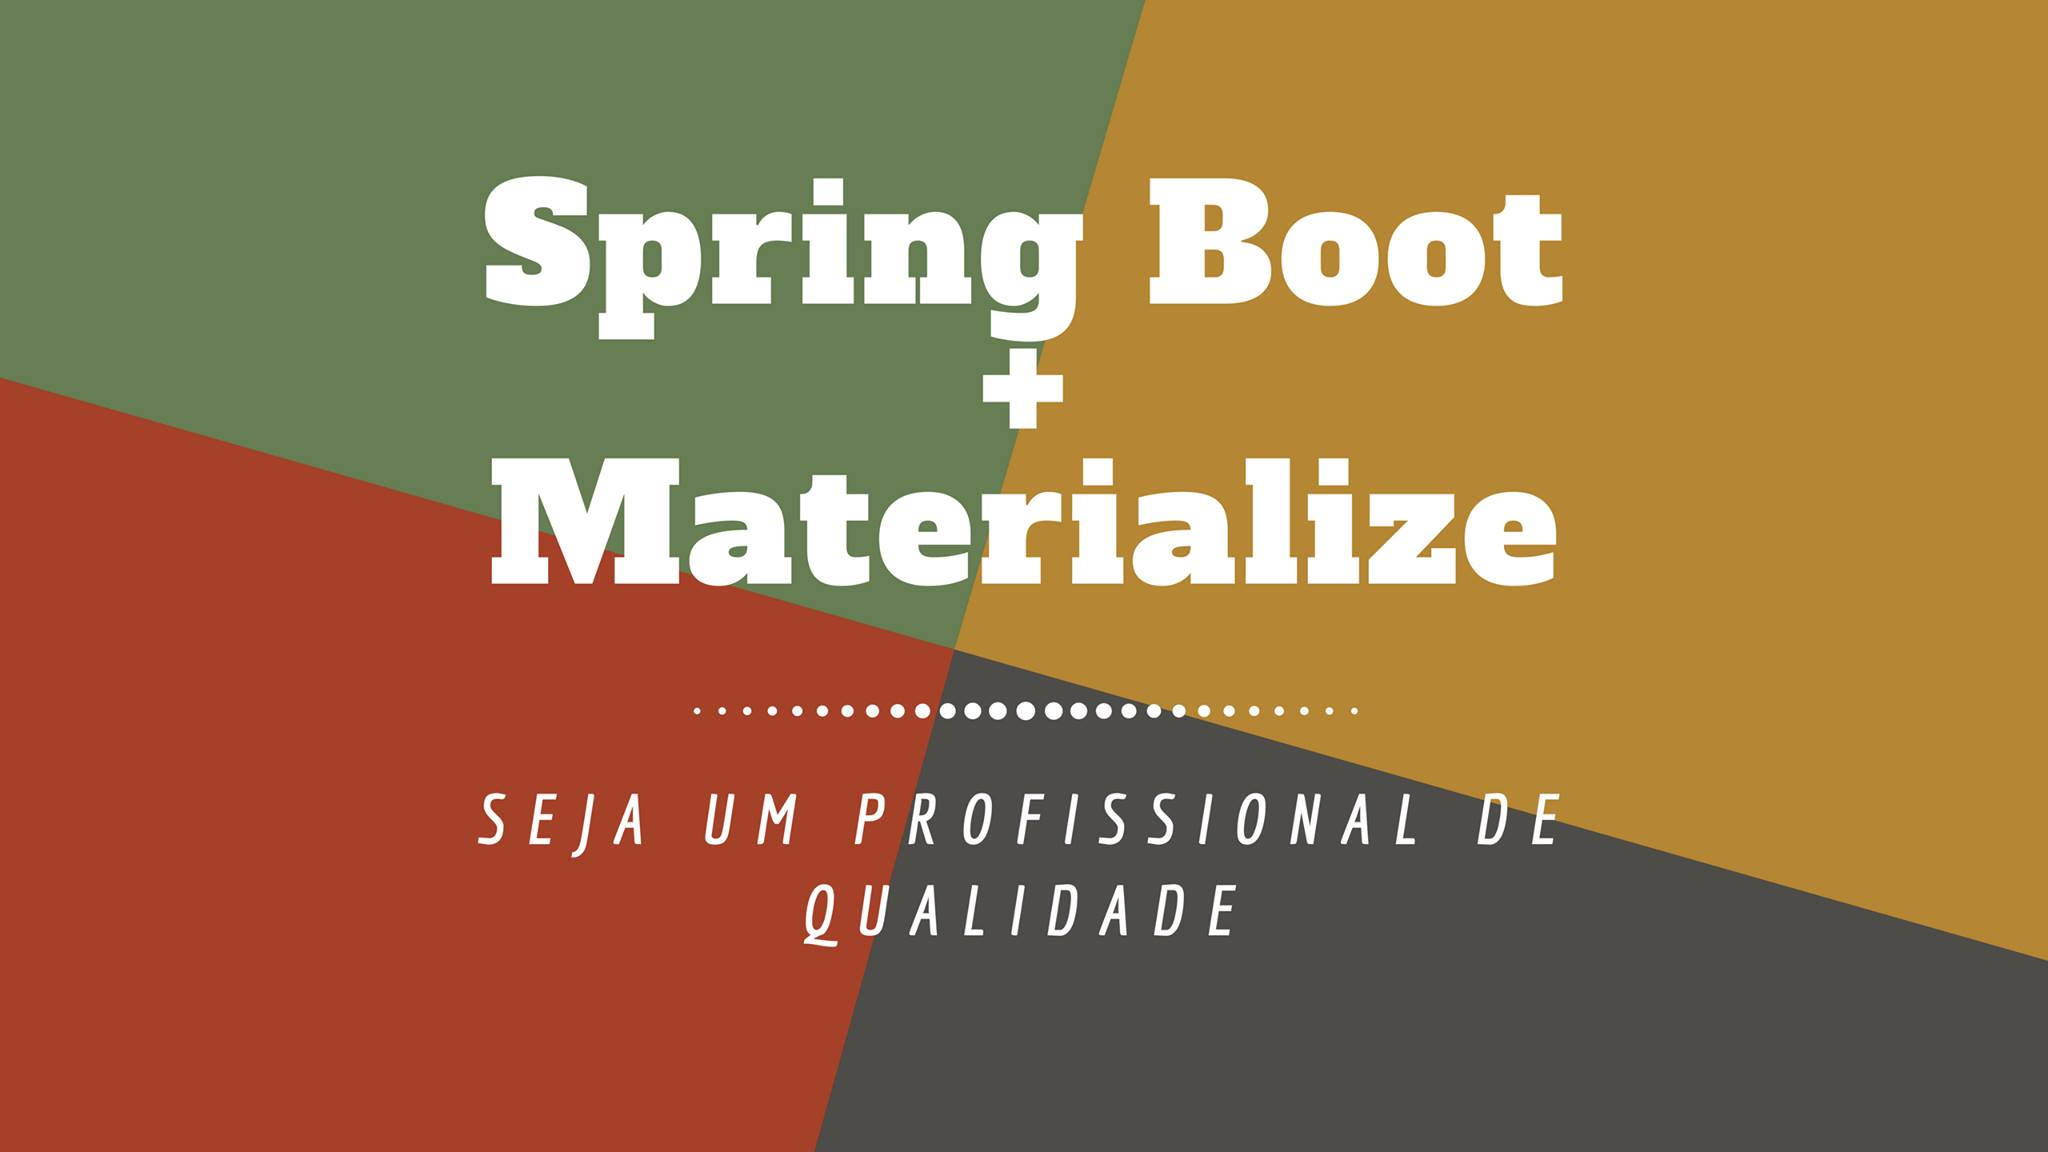 Spring Boot e Materialize